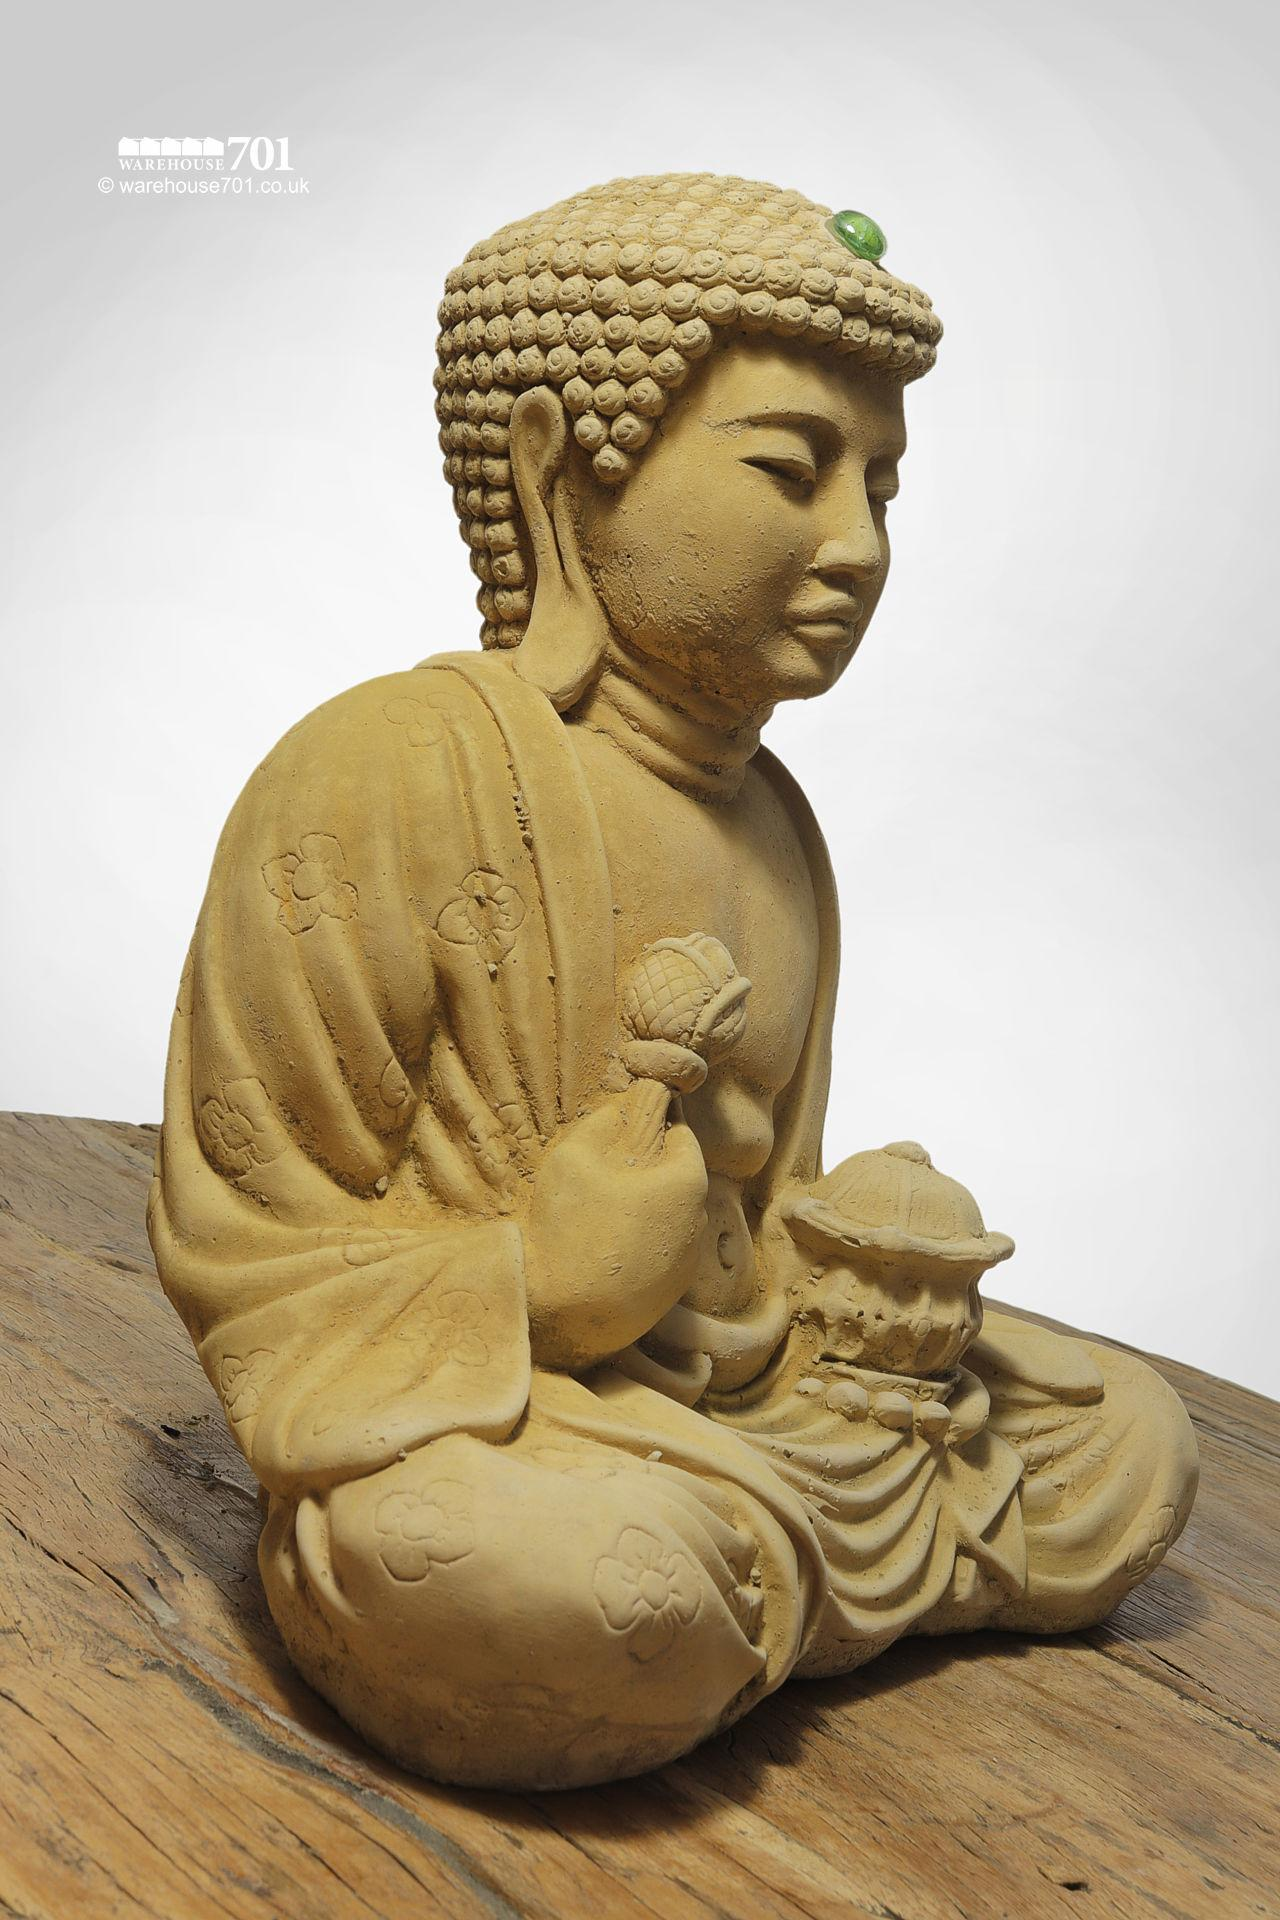 NEW Composite Stone Buddha Garden Statue or Figure with Green Jewel #3